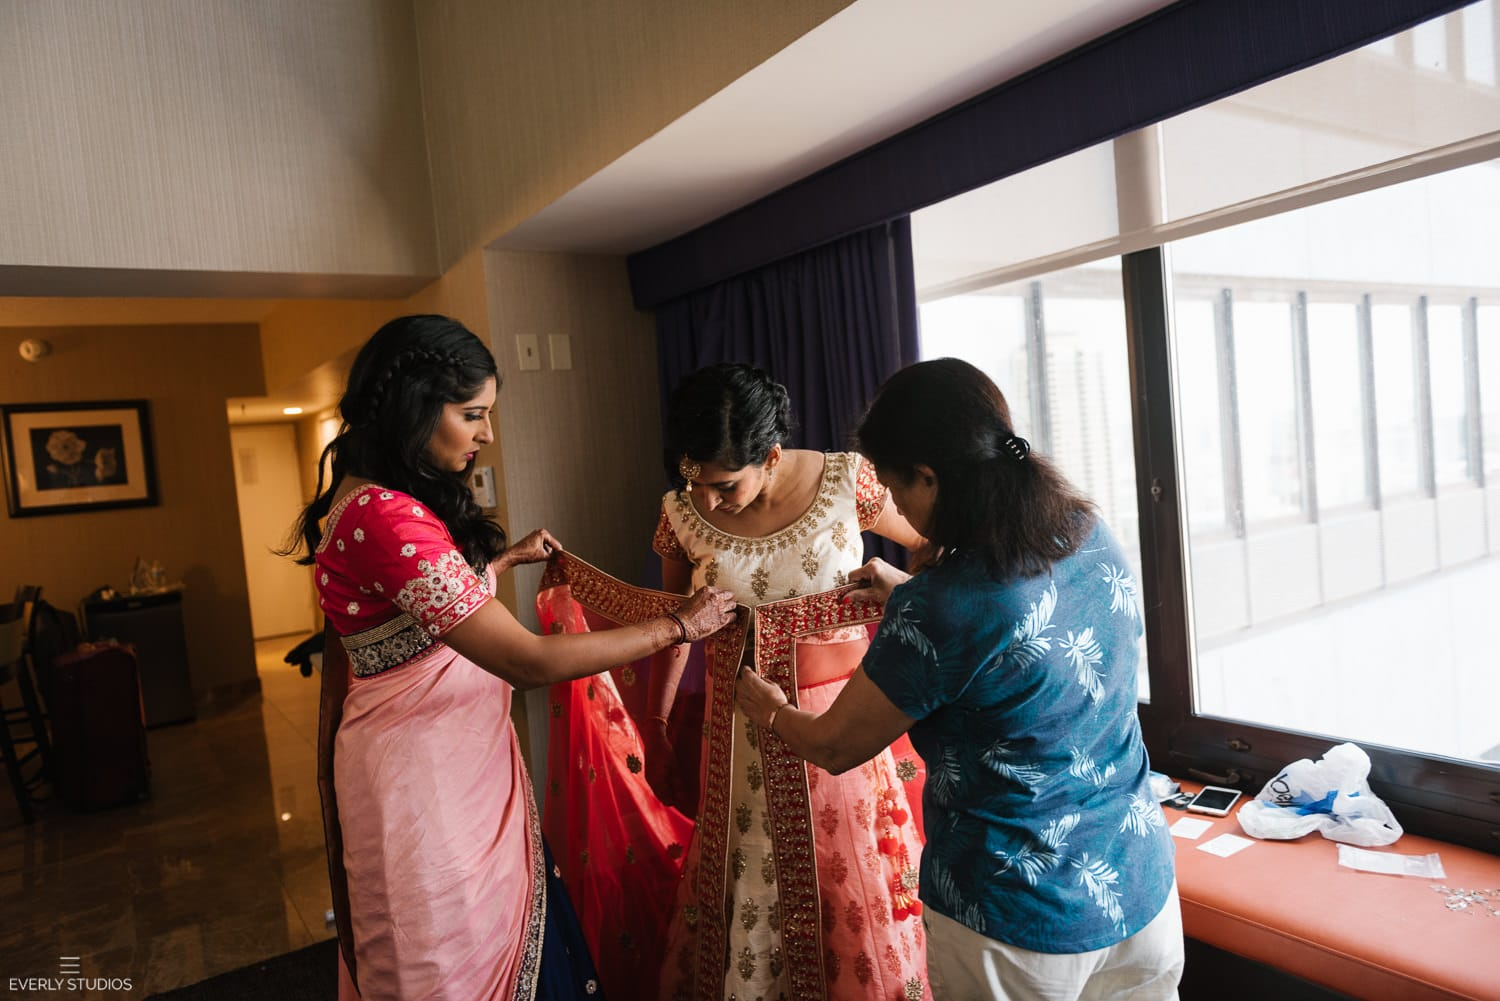 Wolf Point Ballroom wedding in Chicago. Photography by Indian wedding photographer NYC Everly Studios, www.everlystudios.com